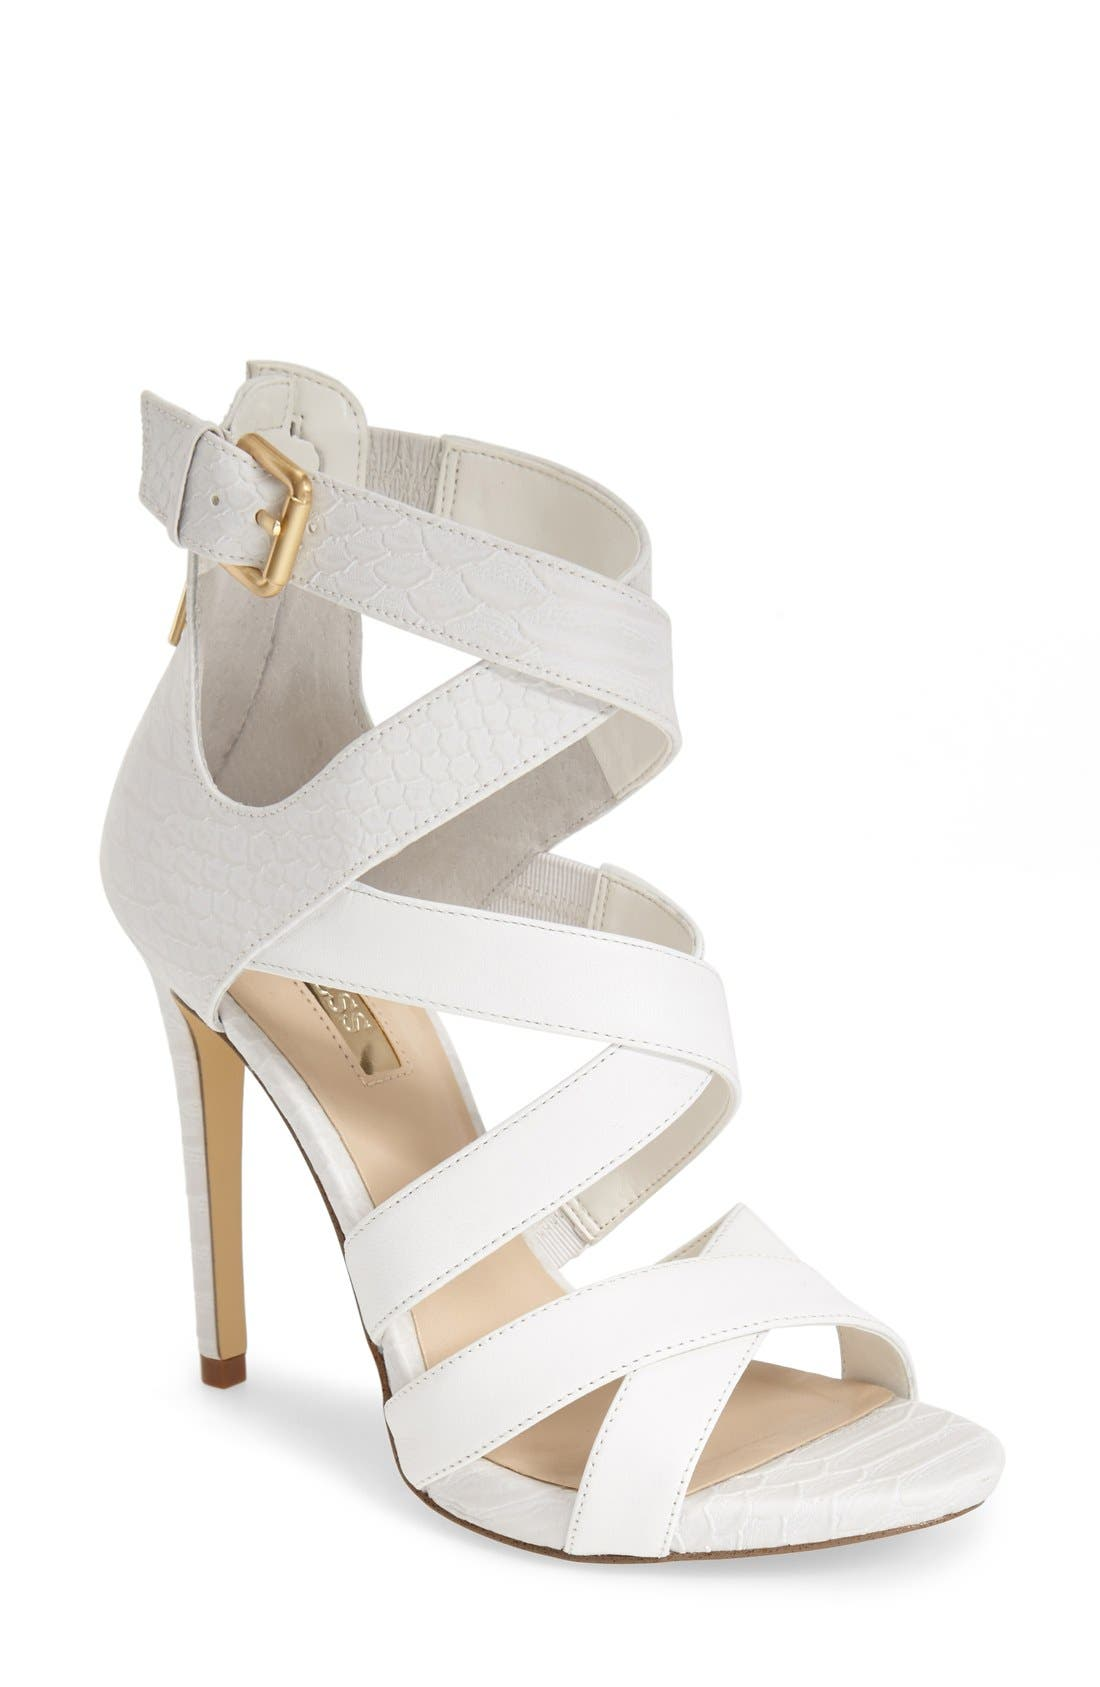 Main Image - GUESS 'Abby' Strappy Sandal (Women)